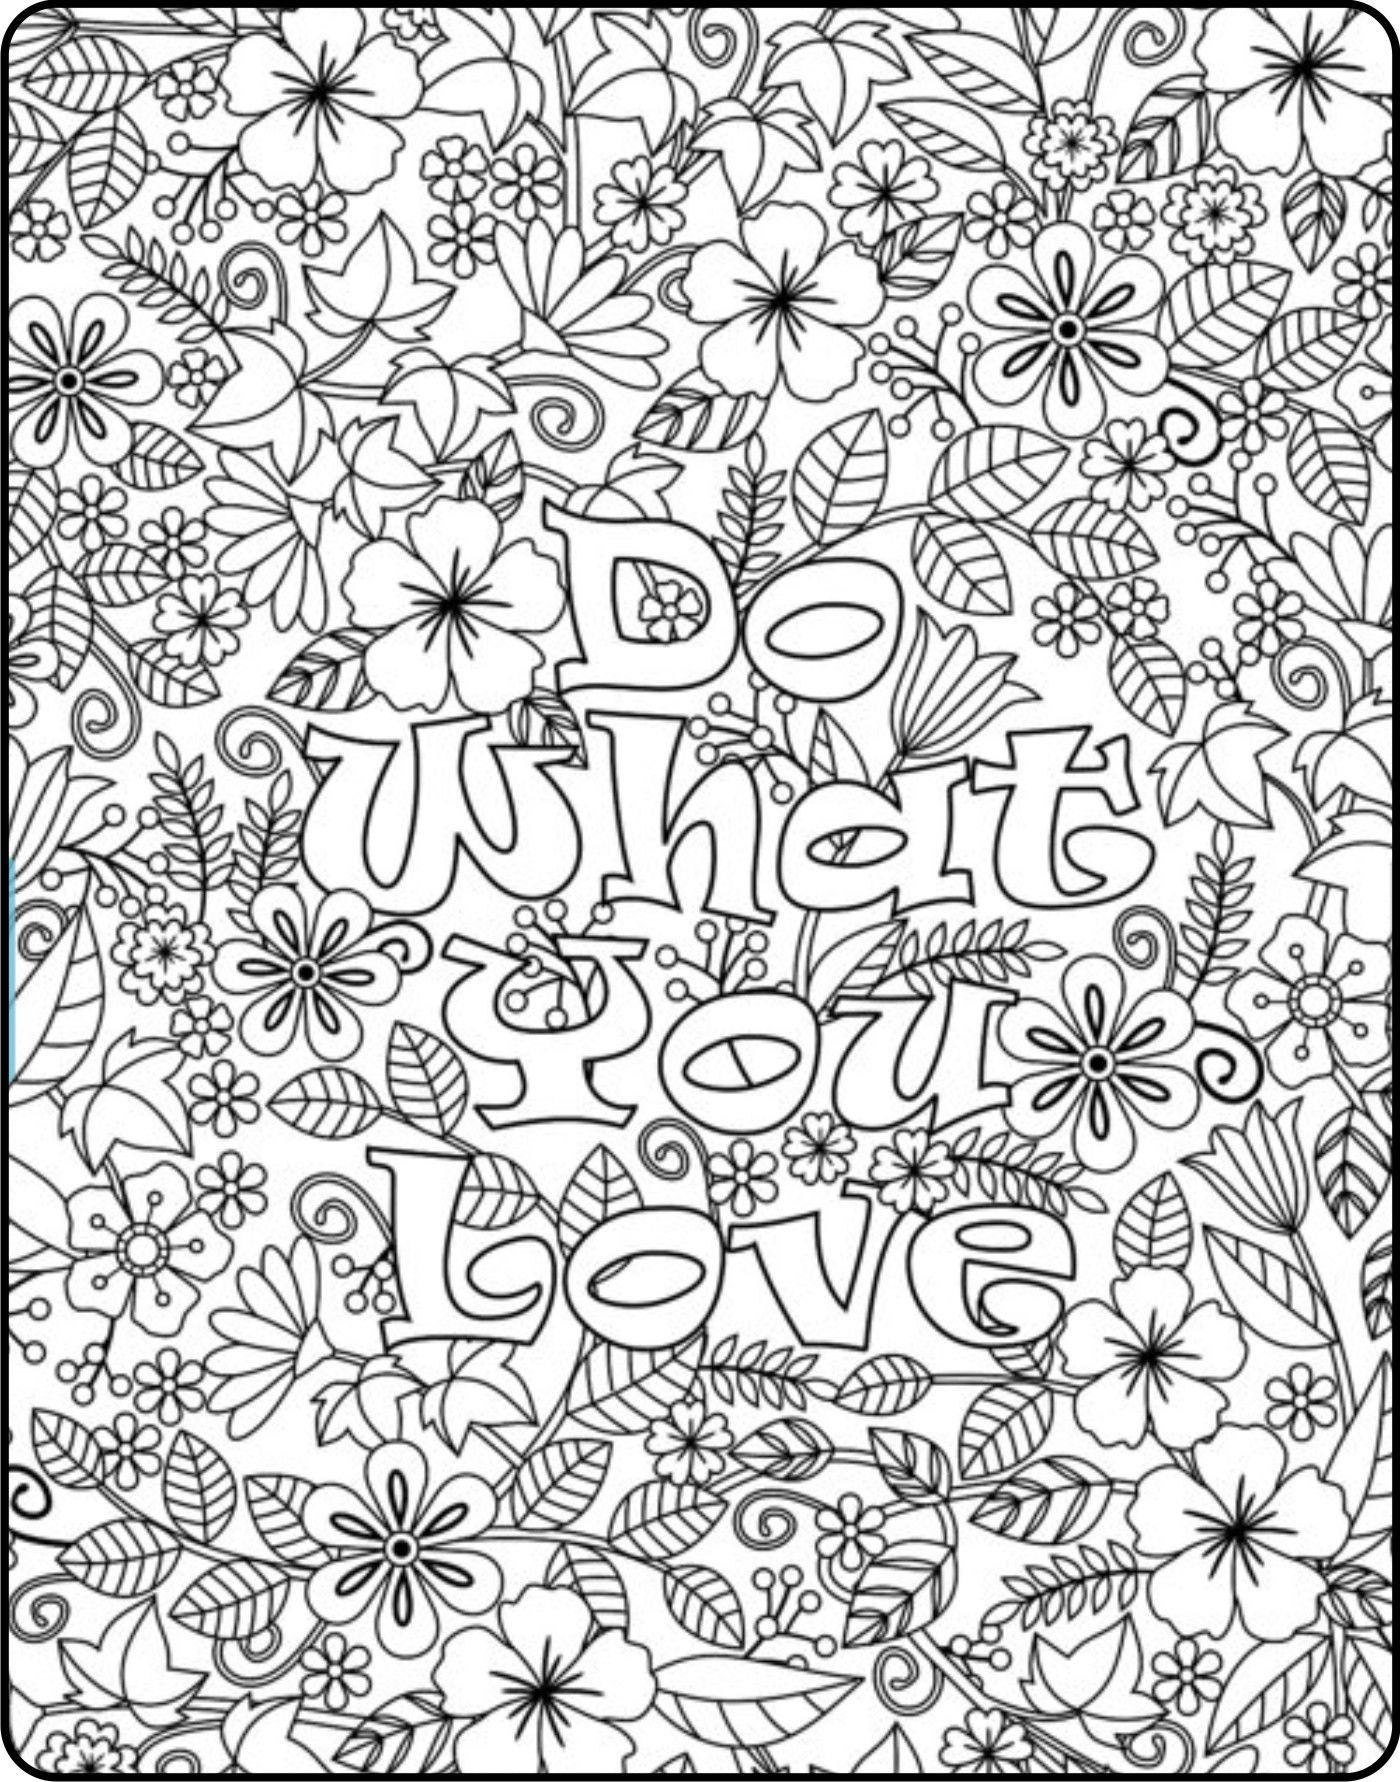 Printable \'Do What You Love\' flower design coloring page for adults ...